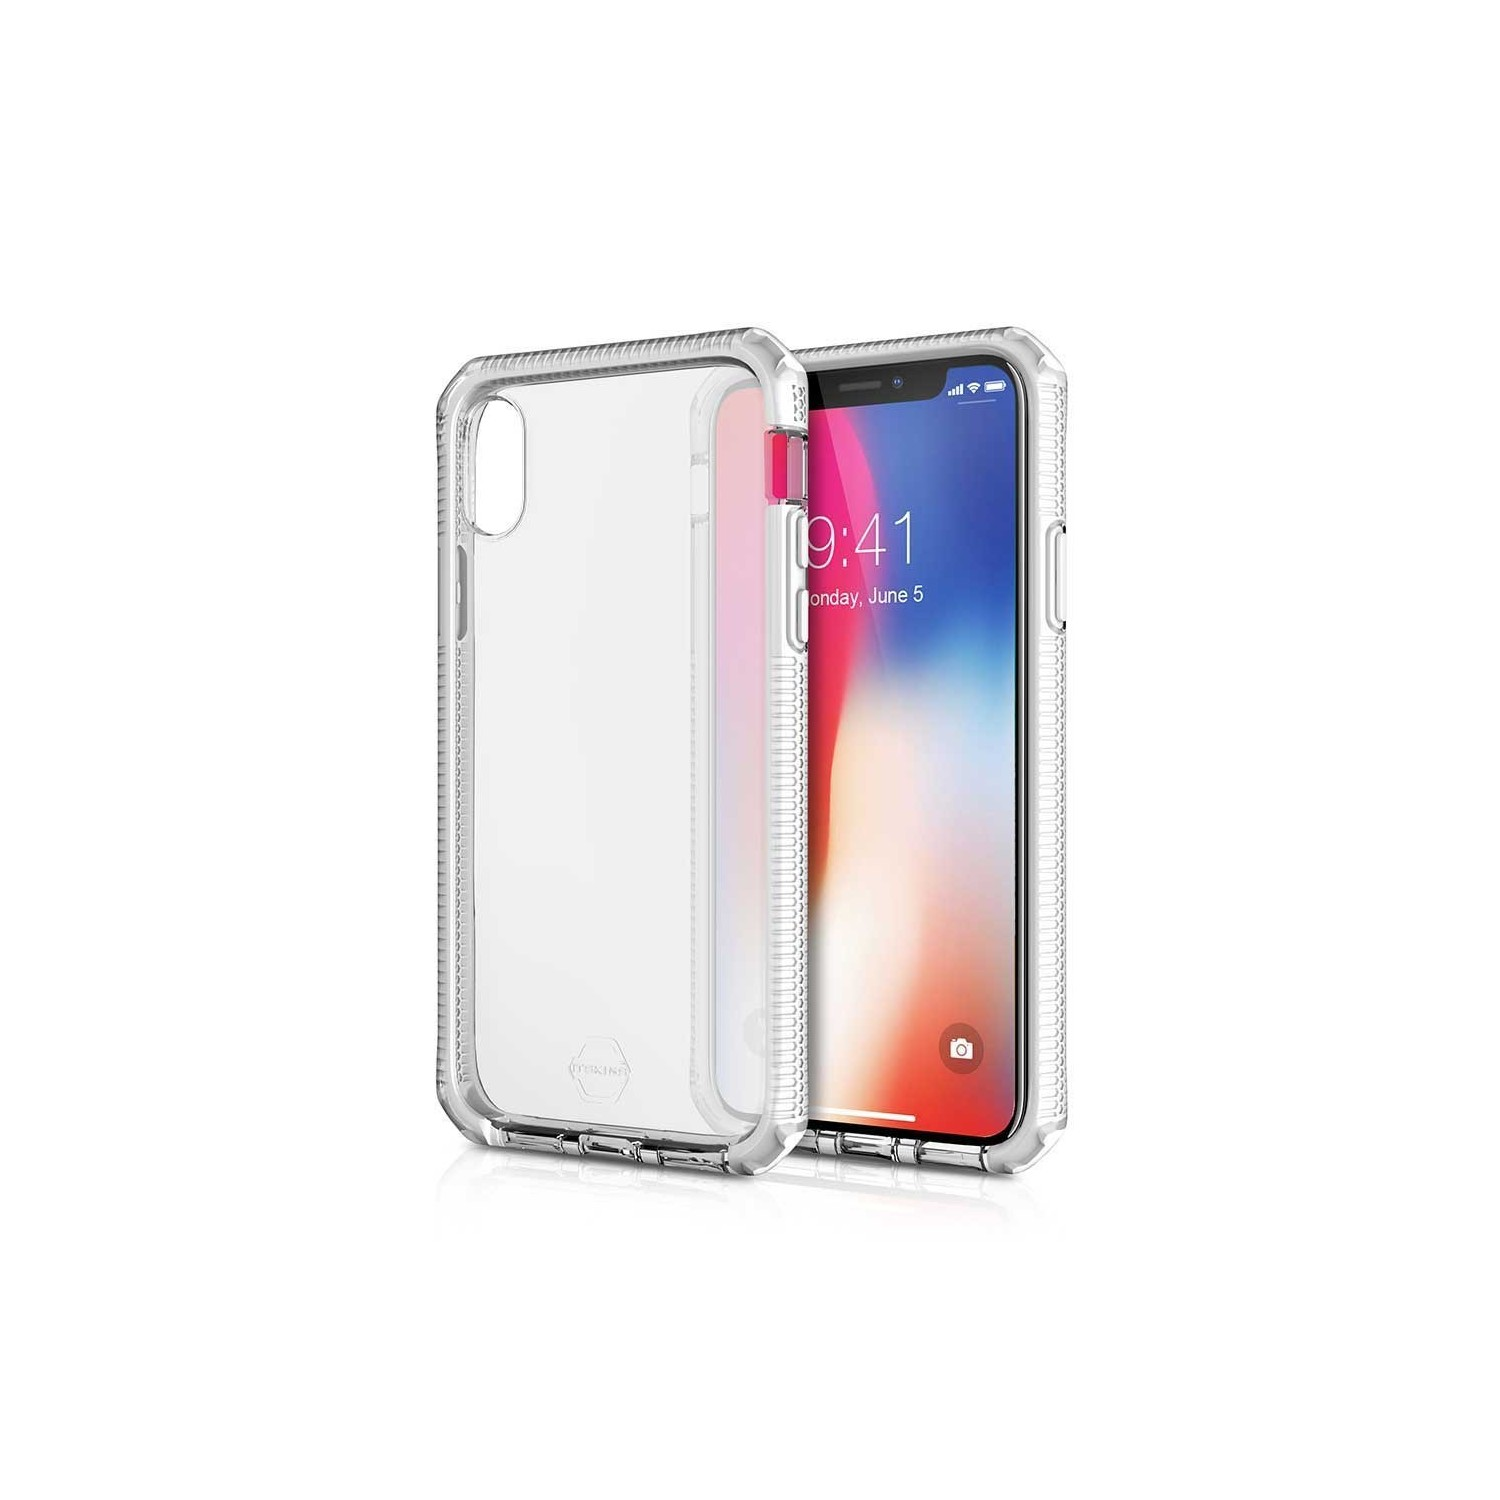 Case - ITSKINS Supreme case for iPhone Xs / X - Trans White